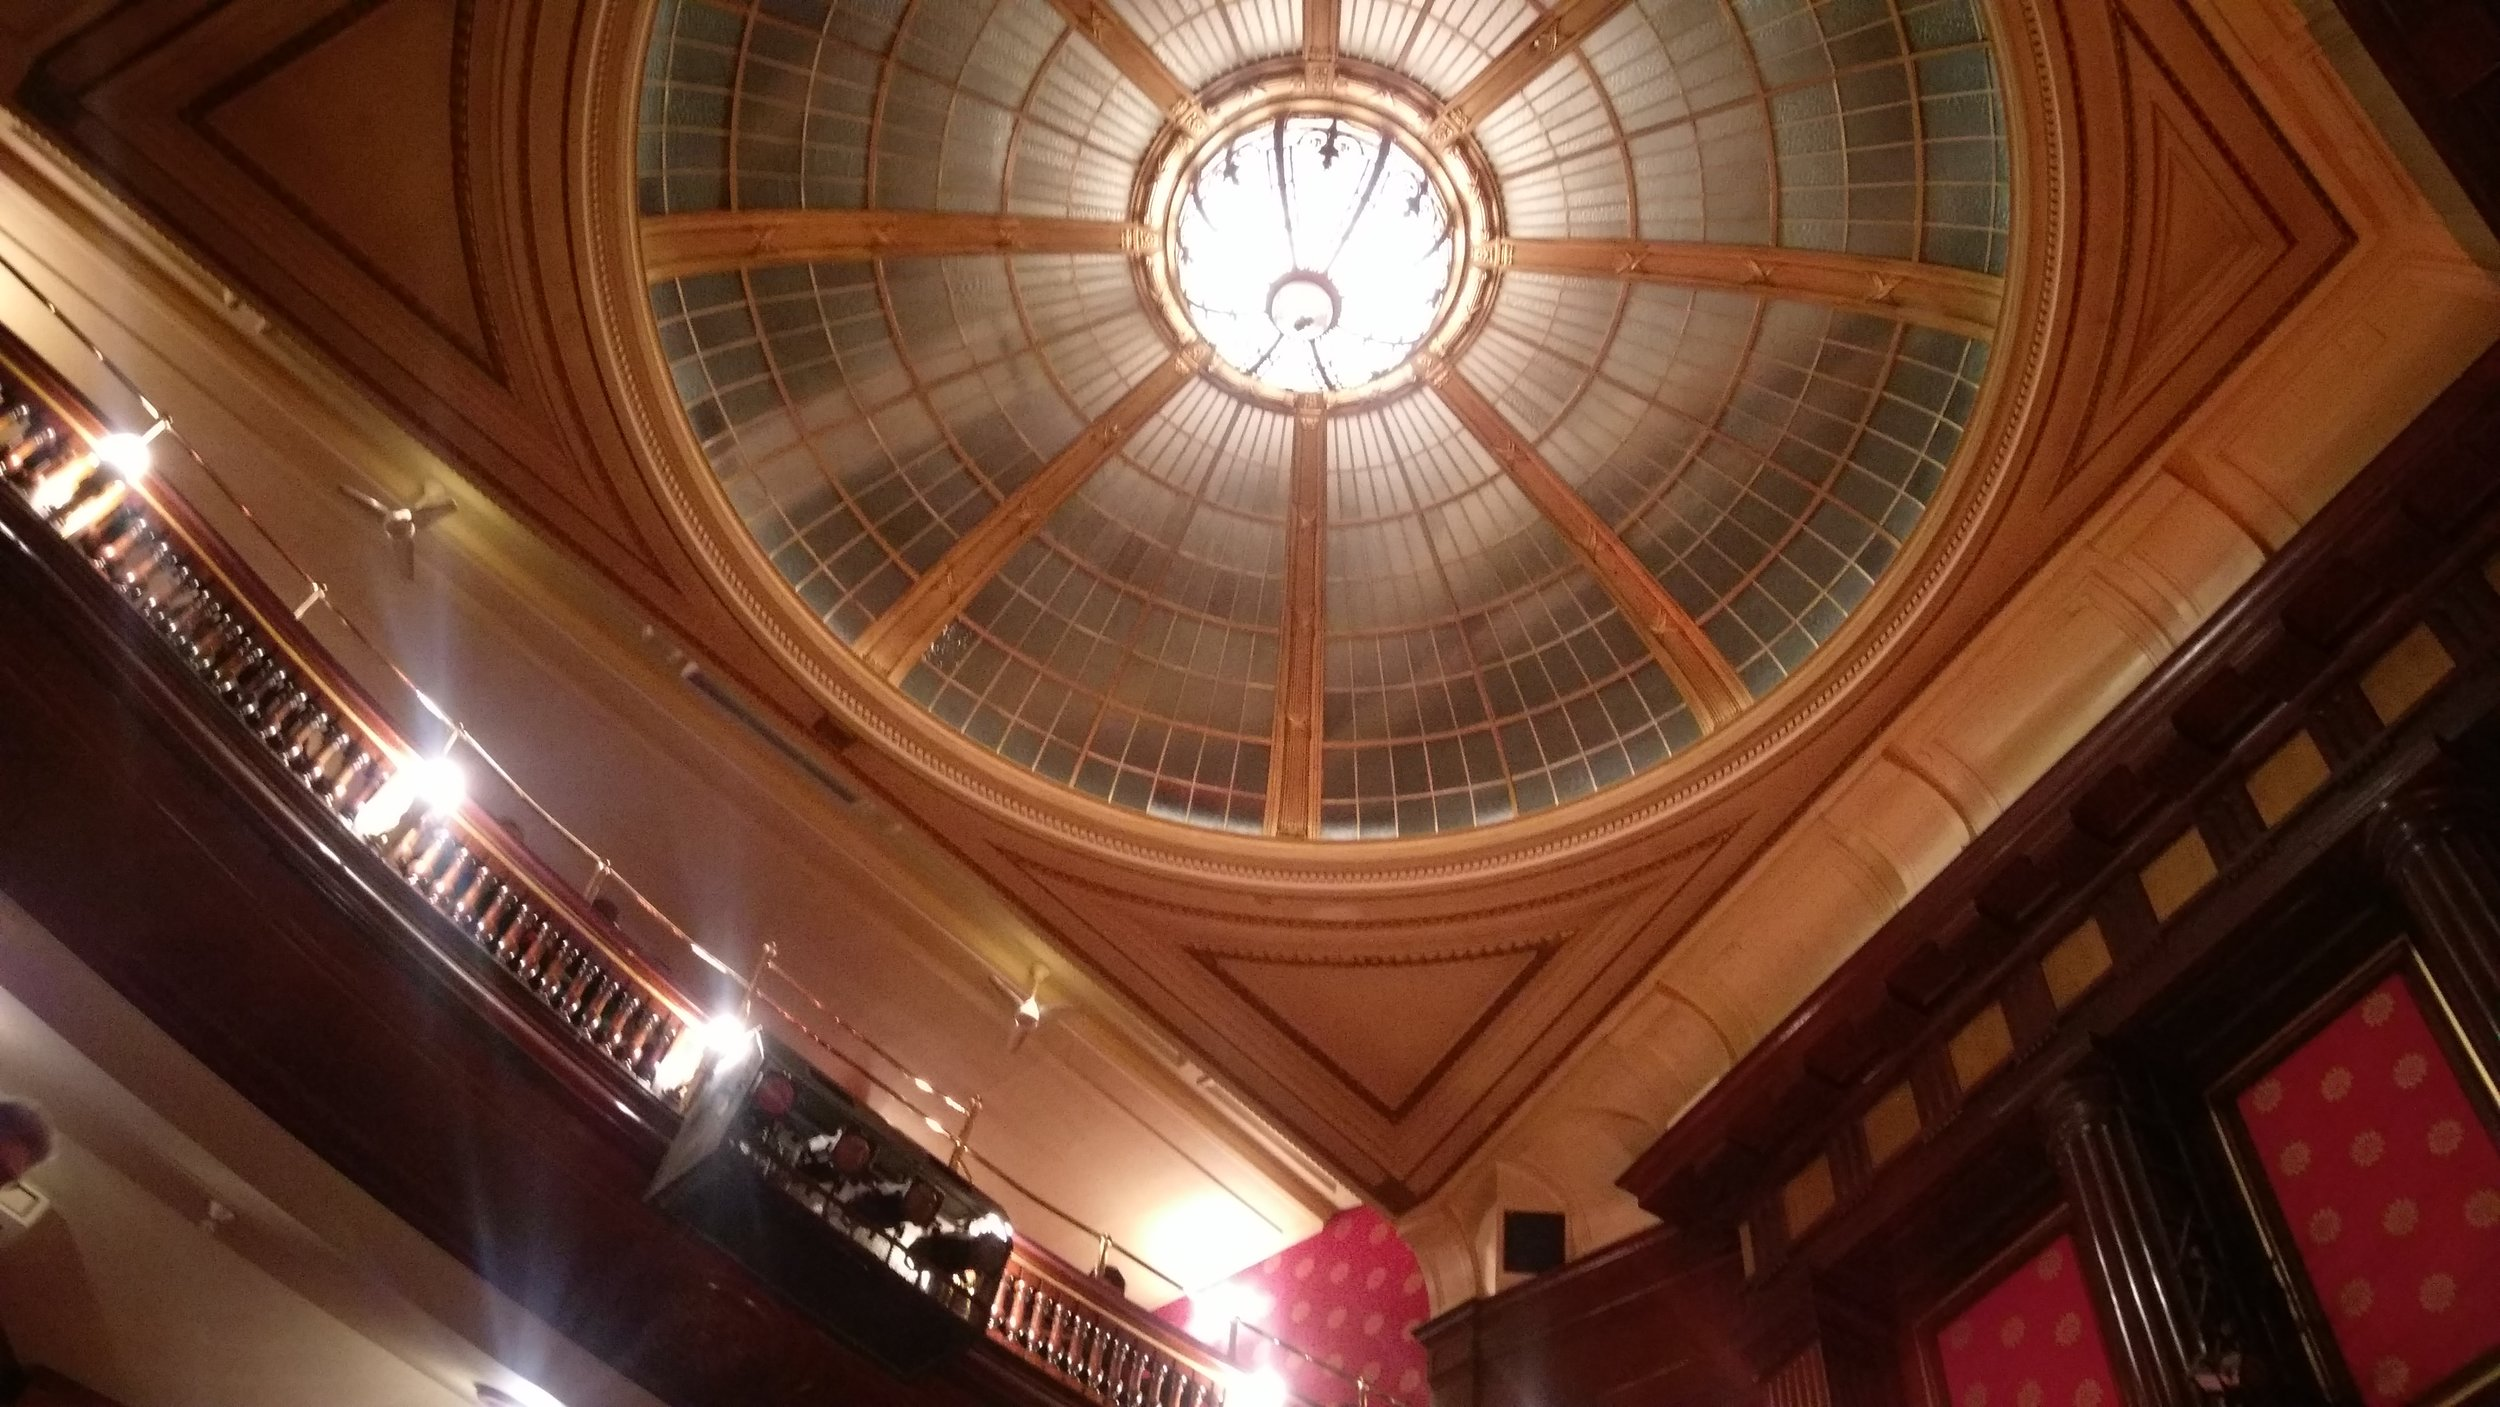 The domed ceiling at St Martins Theatre. What's up there? I want to know!